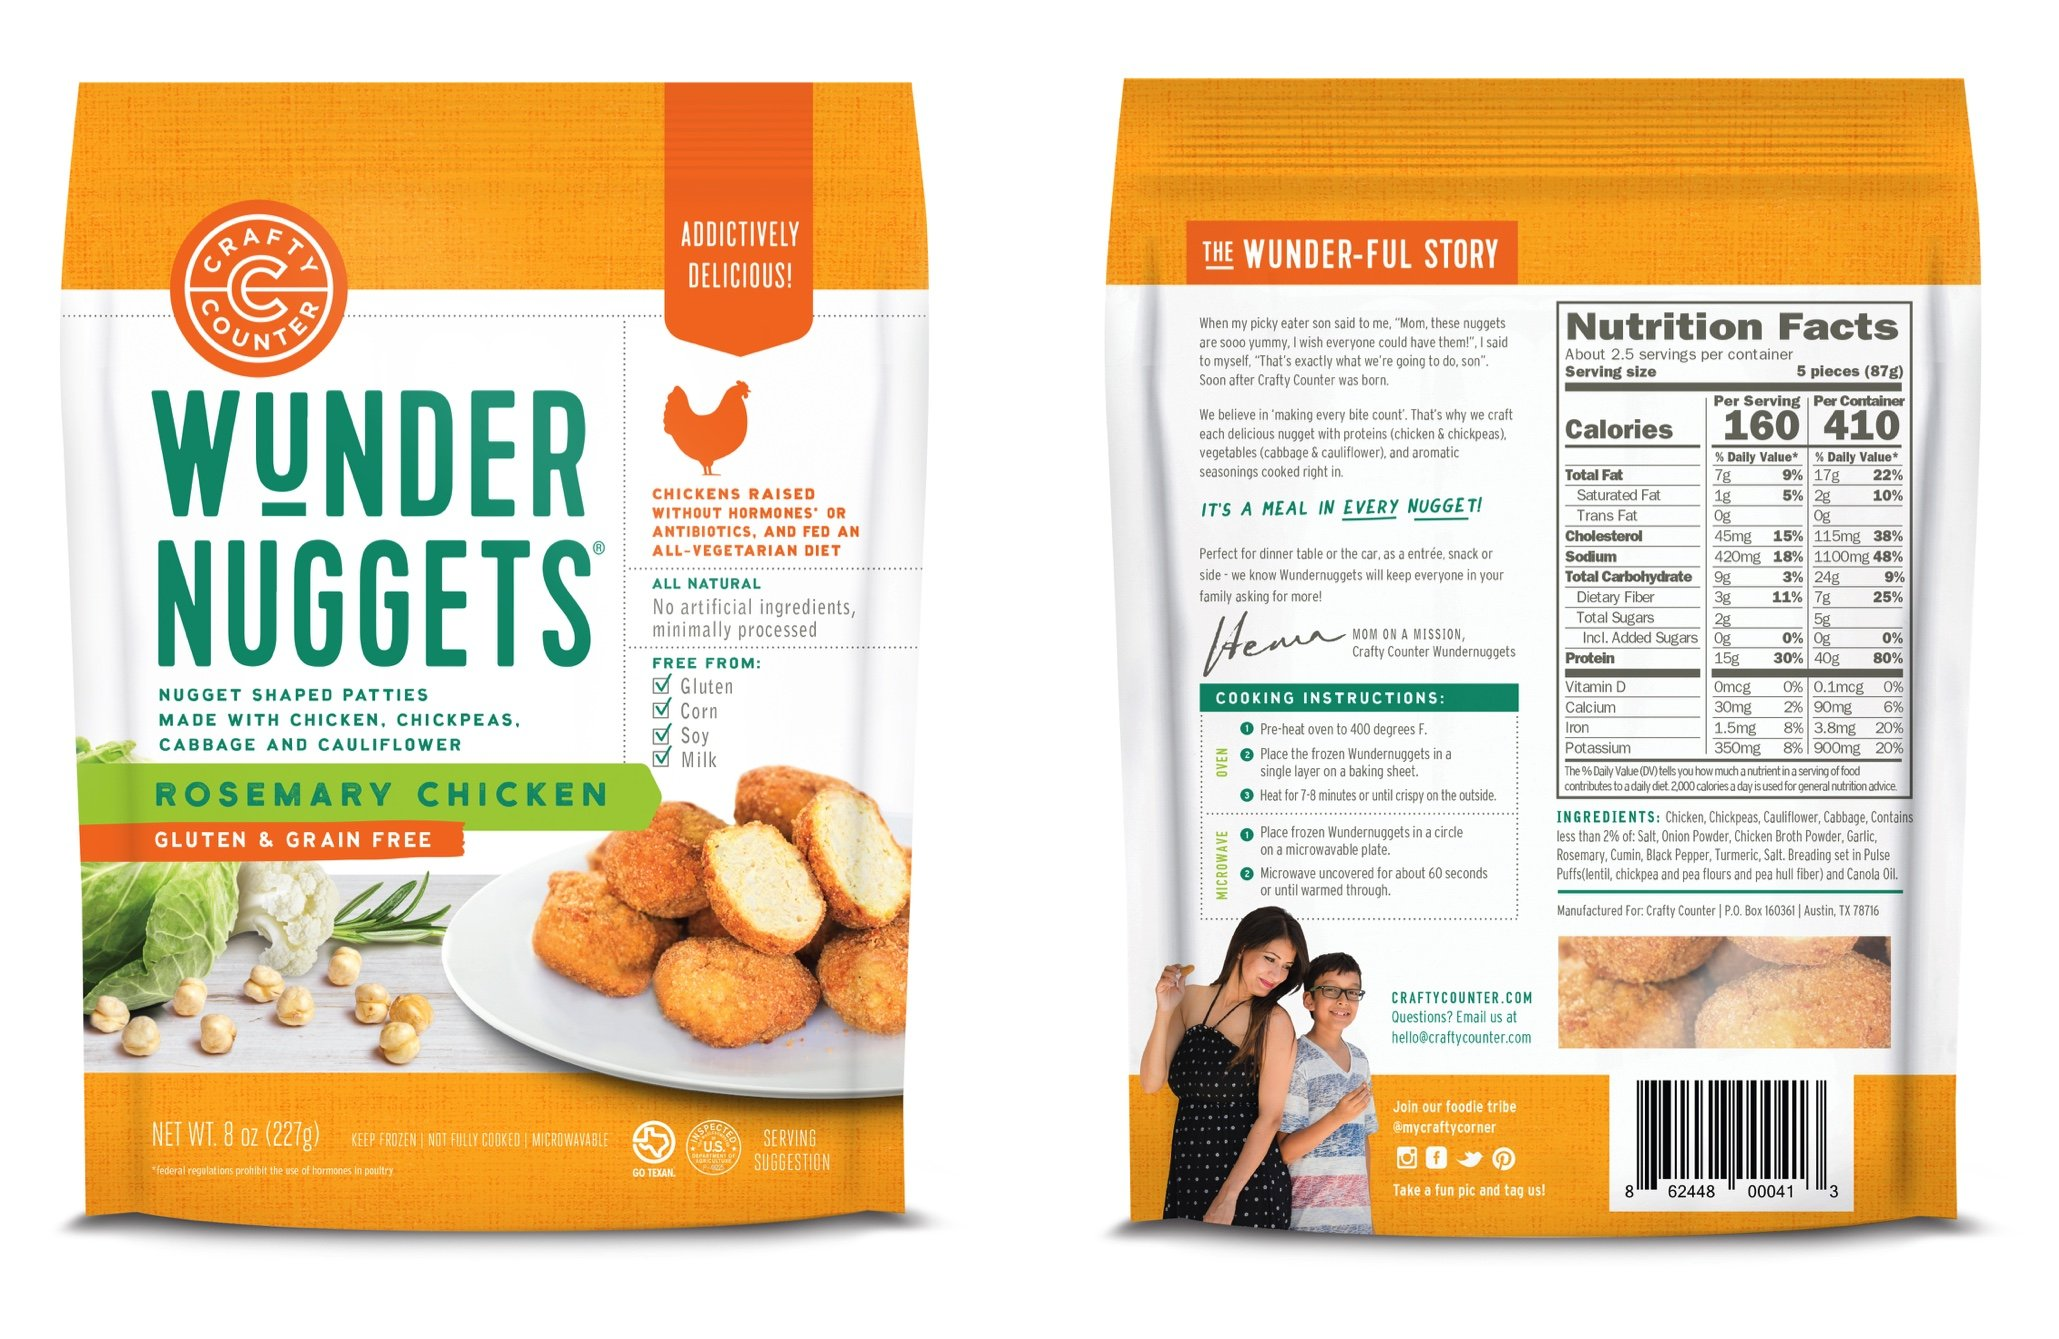 Wundernuggets - Gluten & Grain Free Rosemary Chicken with Veggies and Whole Grains - Pack of 6 Bags (14-16 wundernuggets in each bag) - Free of All Top 8 Allergens by Wundernuggets